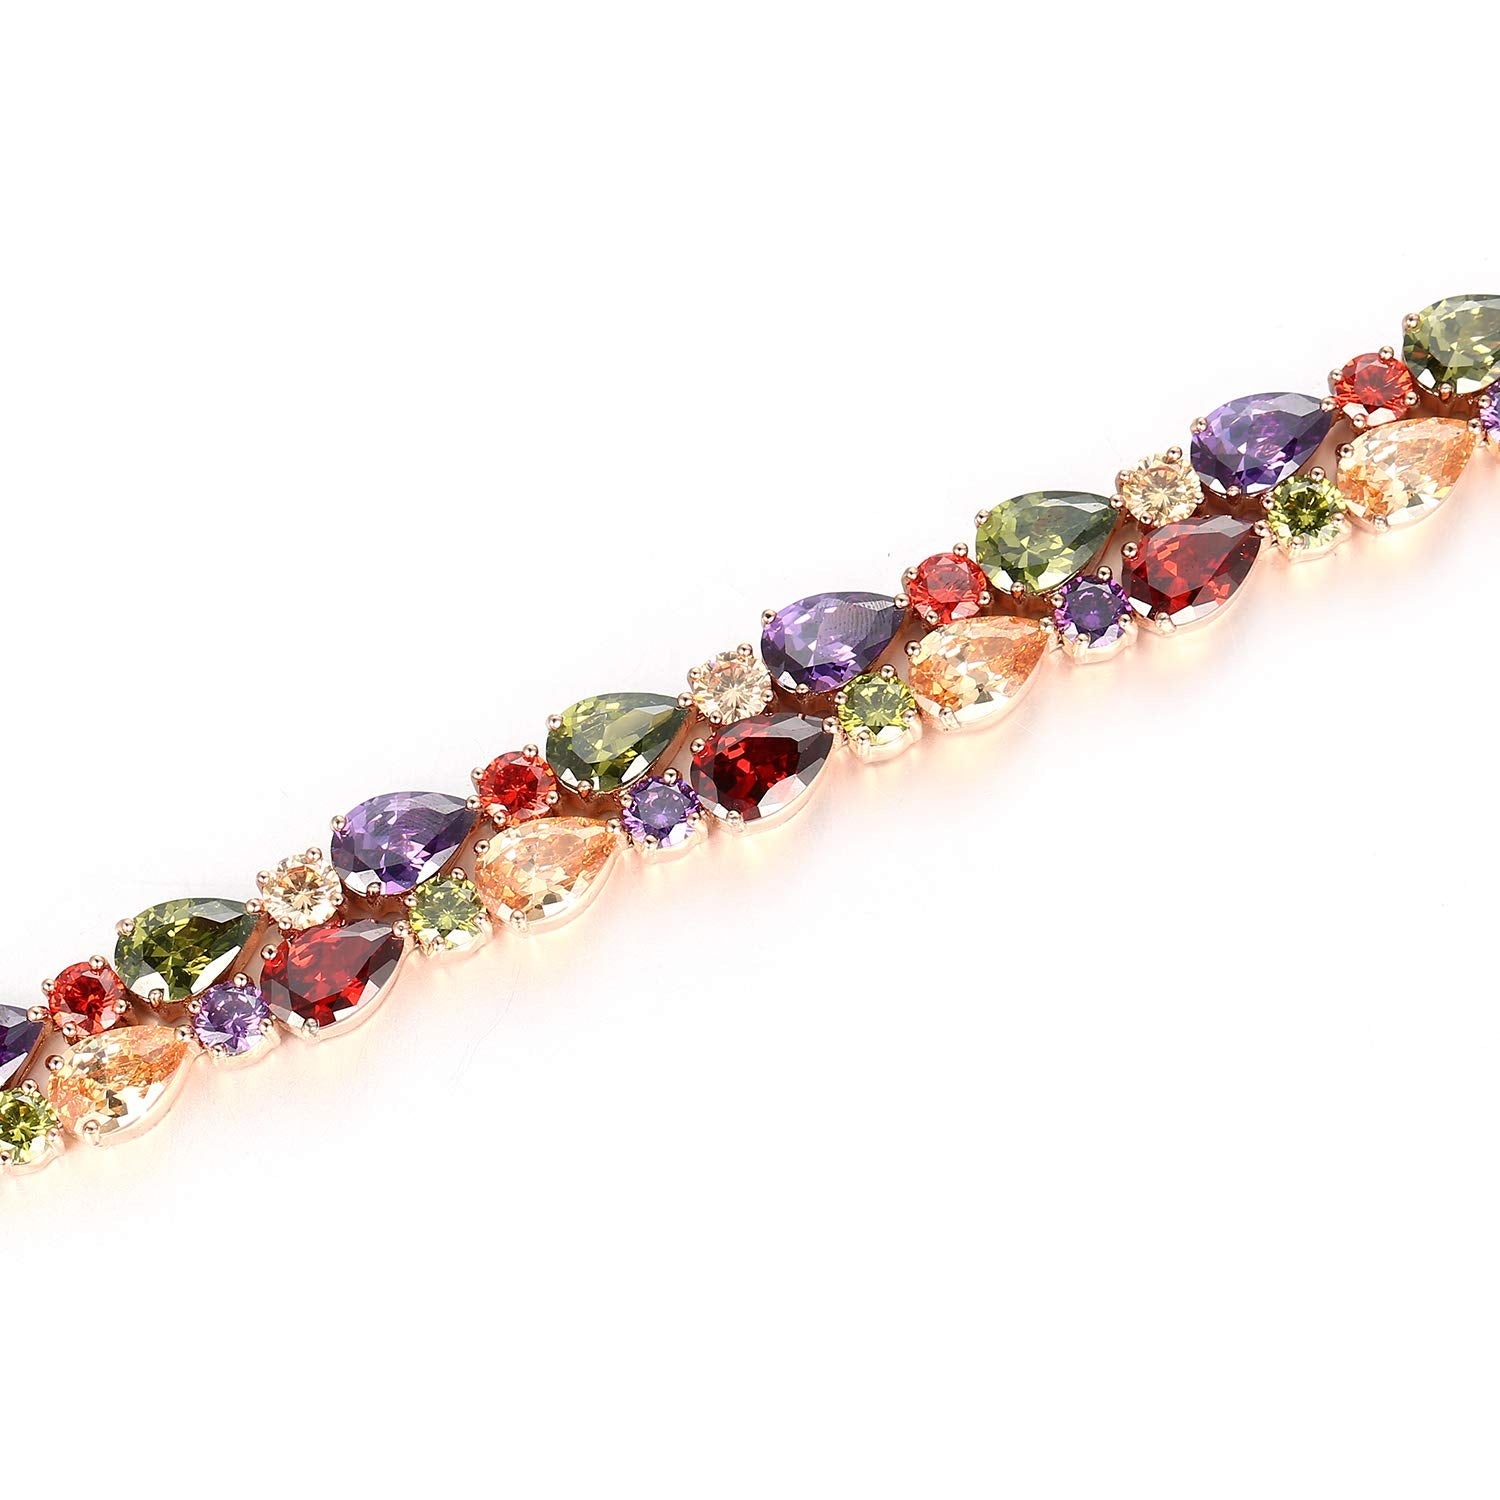 ELSAPELC Jewelry Beautiful Colorful Crystal Bracelet for Women Unique Valentine's Day Present Gifts for Women - wiihuu